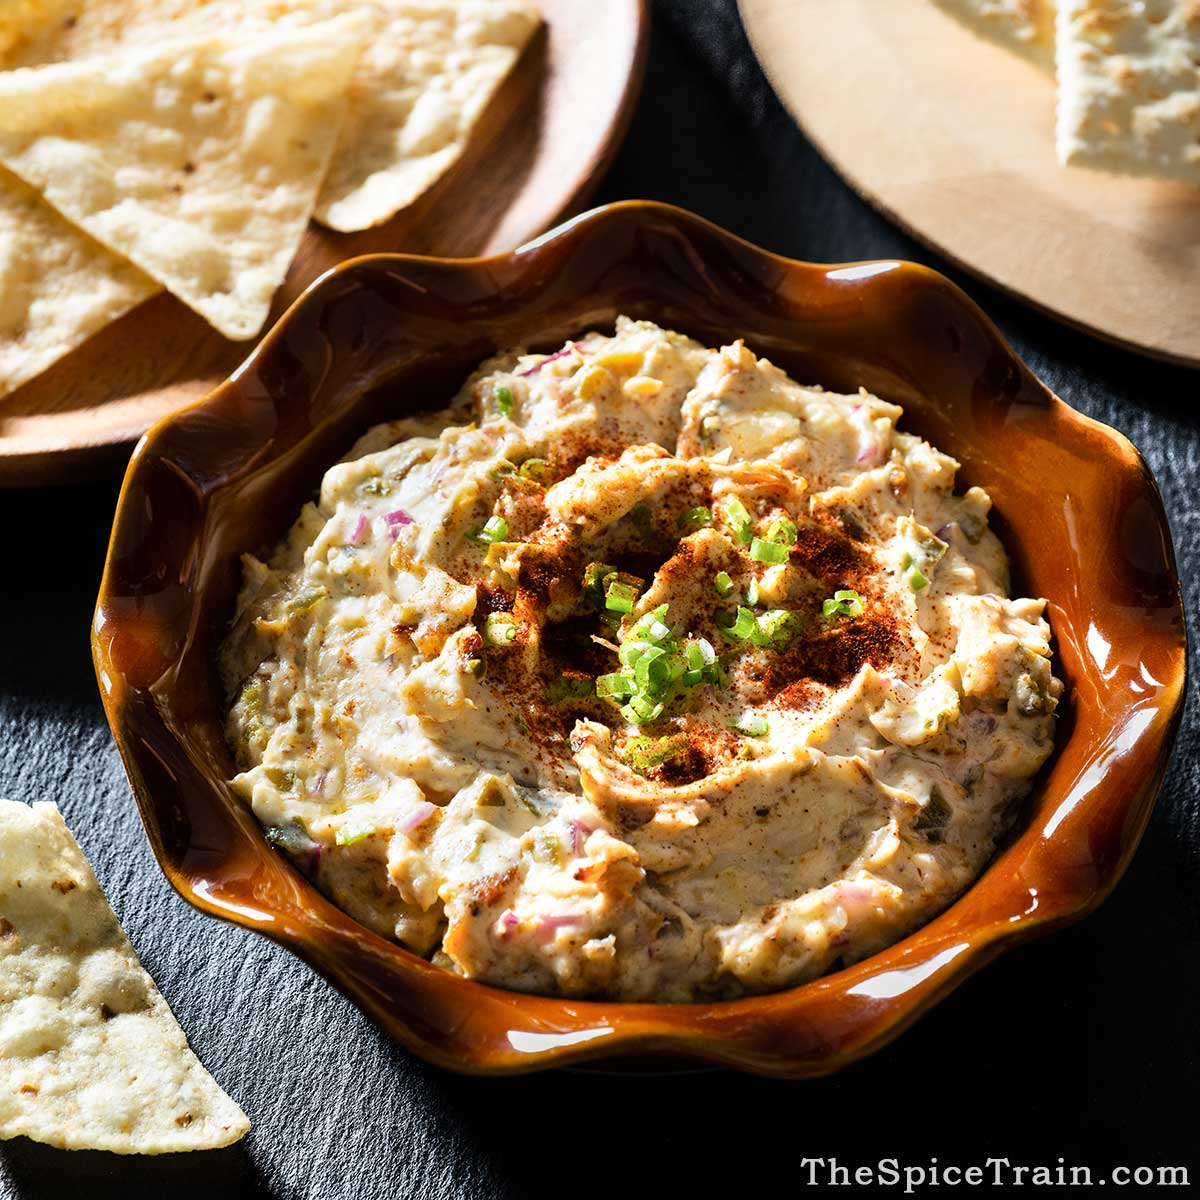 Chicken dip in a pie pan with tortilla chips and crackers.